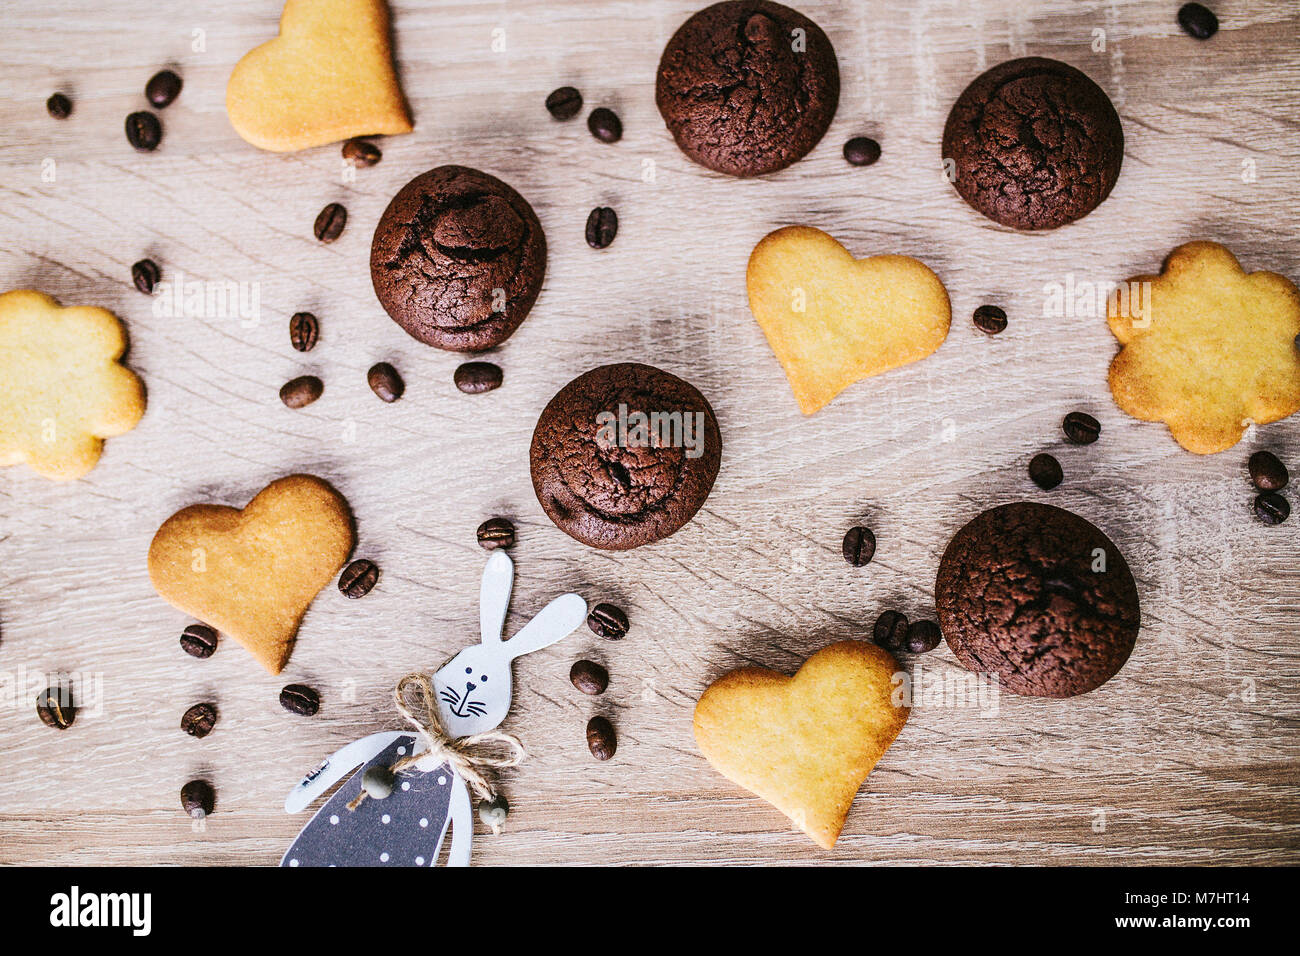 Heart-Shape Cookies On Wooden Table - Stock Image